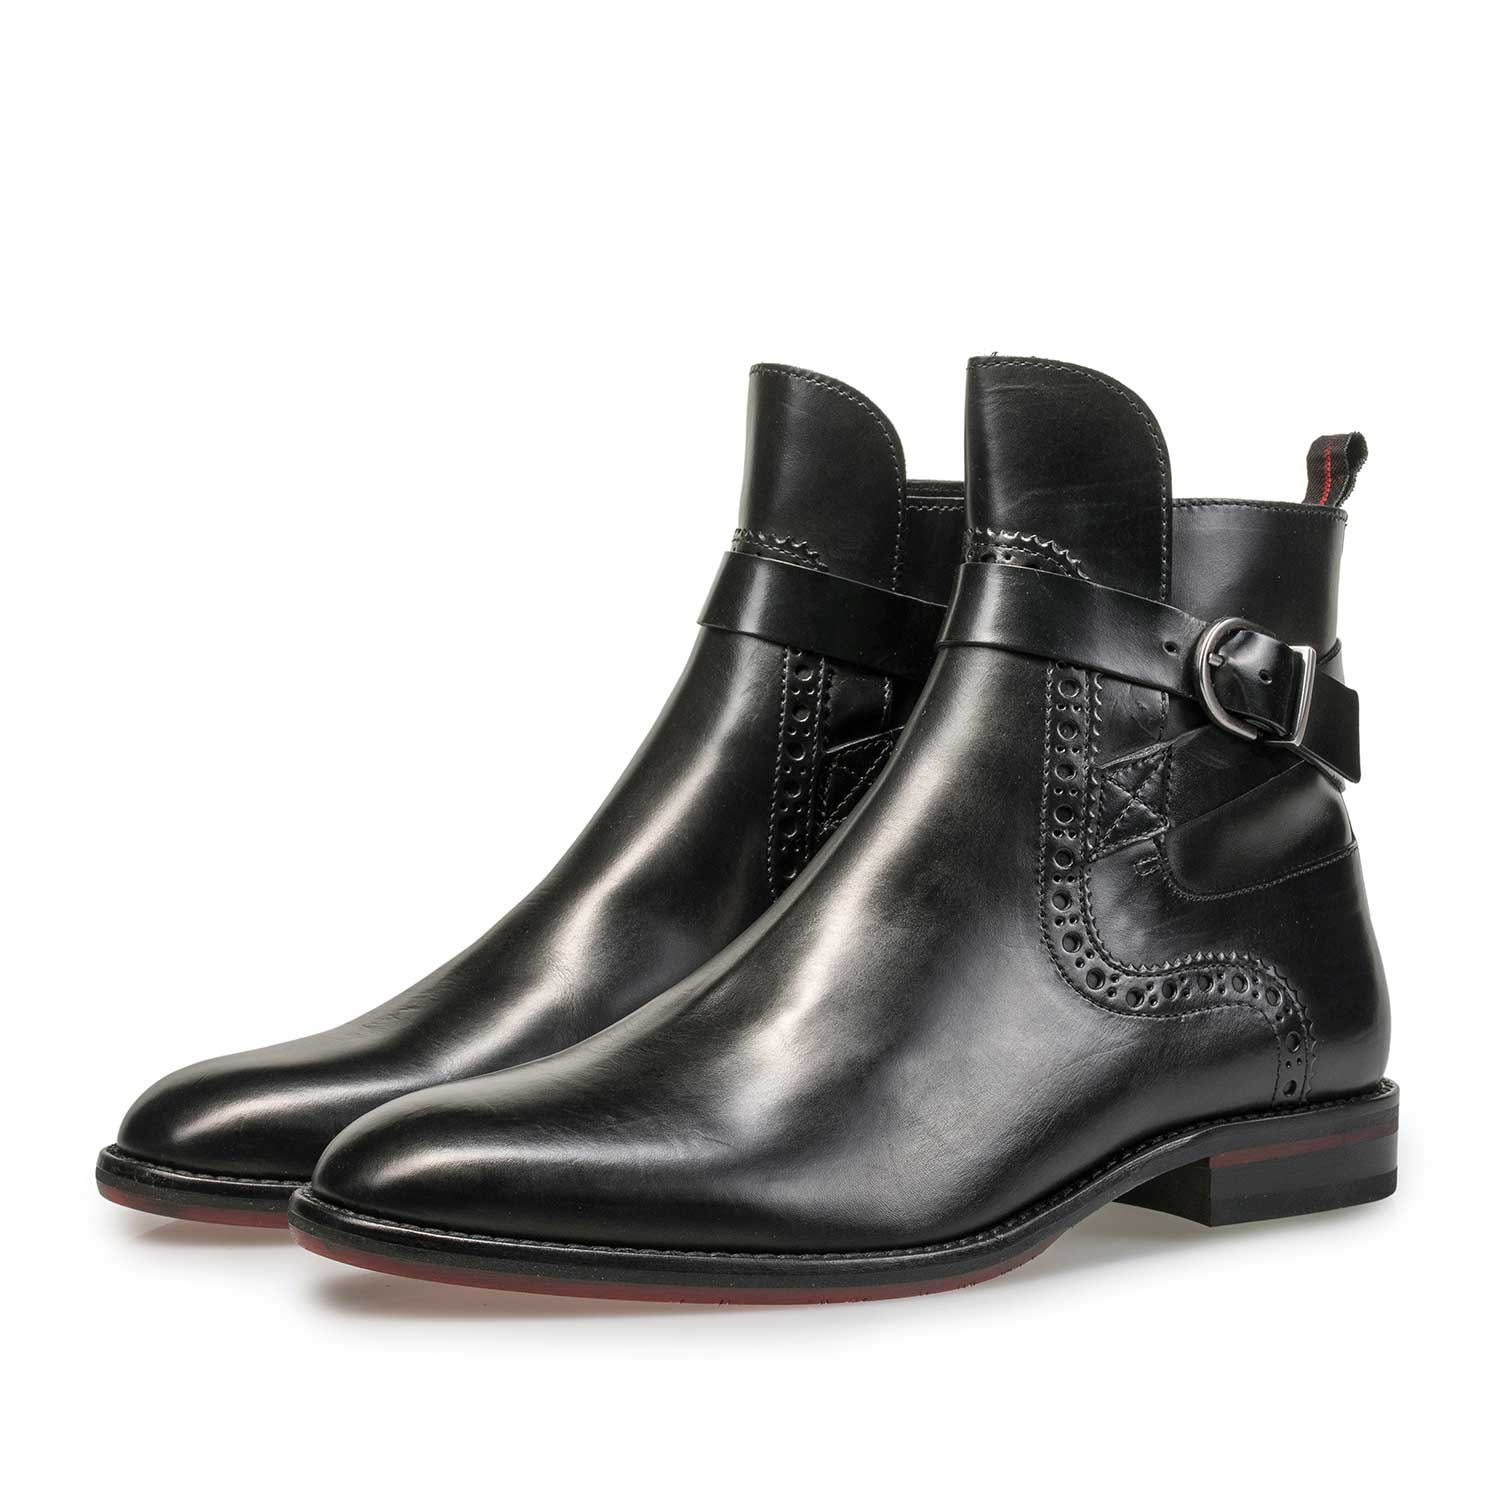 85600/00 - Black leather ankle boot with buckle